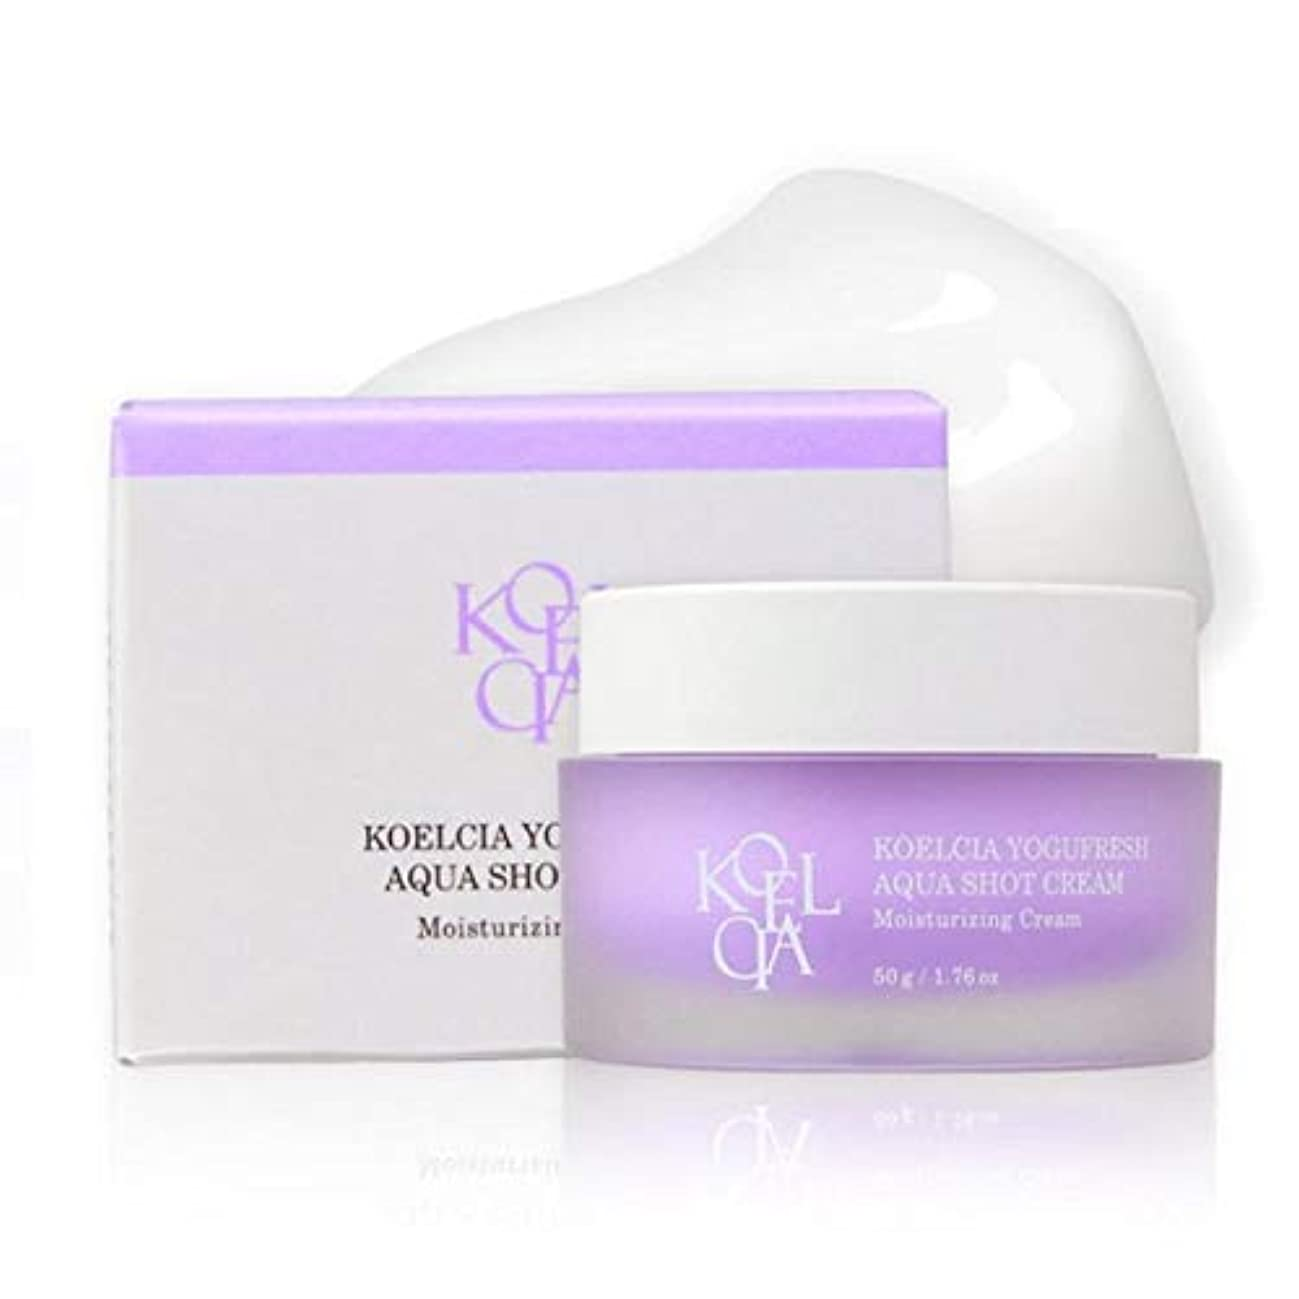 脊椎文明化する肥料KOELCIA YOGUFRESH AQUA SHOT CREAM 50g/Hot K-Beauty Best Moisture Cream/Korea Cosmetics [並行輸入品]